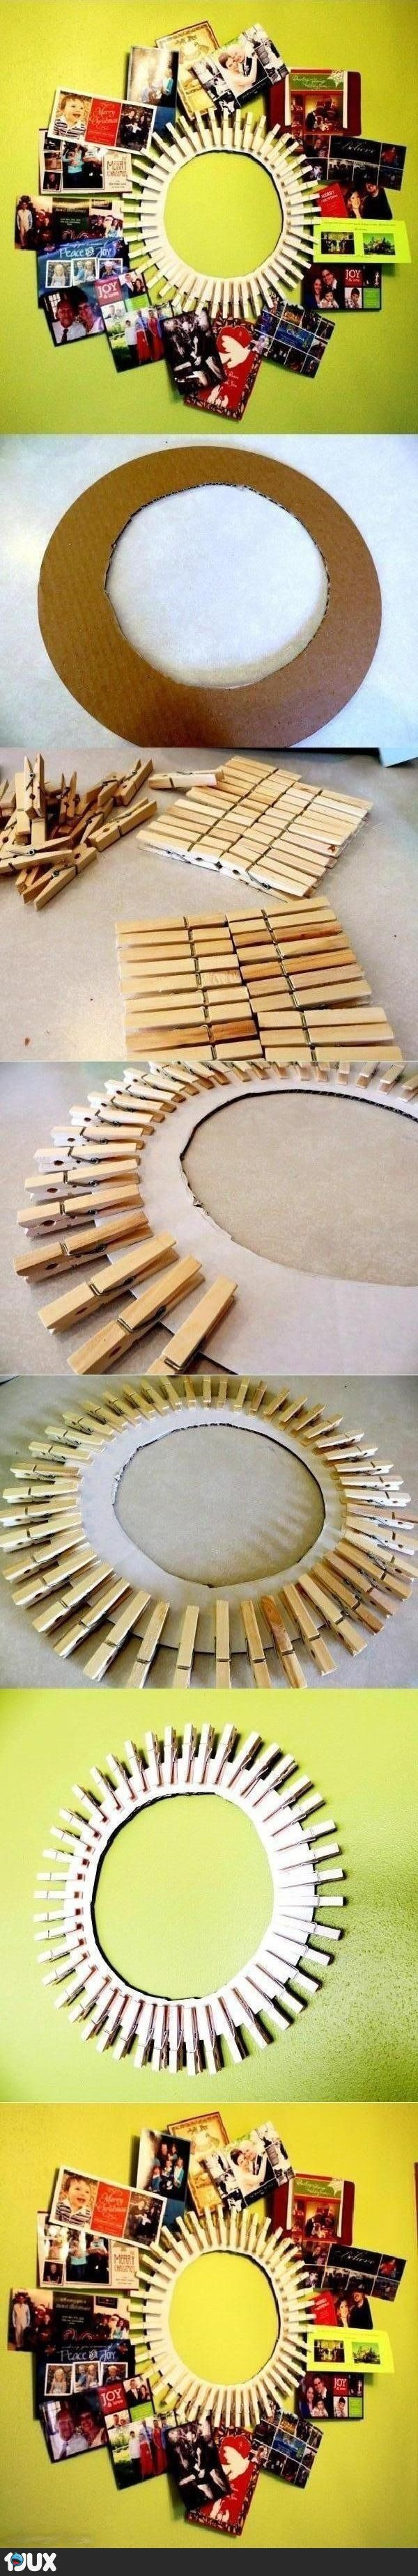 CLOTHING PINS TO A MIRROR AND SIMPLY CLIP PHOTOS...LOVELY IDEA